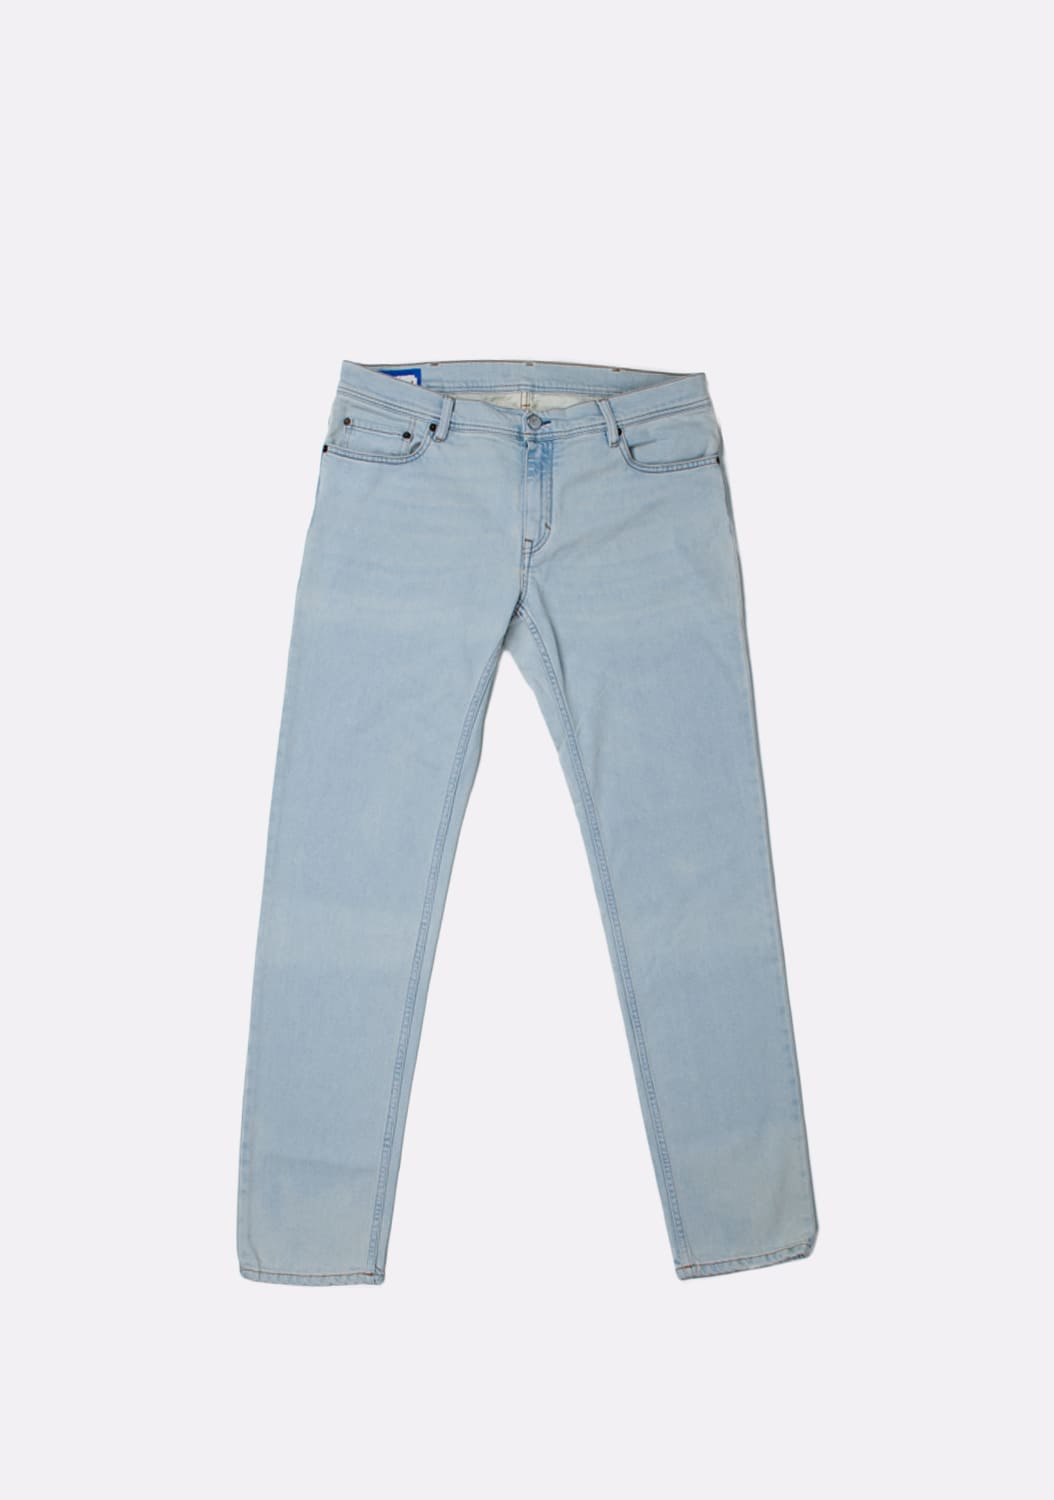 Acne-Studios-Blå-Konst-North-Lt-Blue-34-32-urock-dzinsai (2)